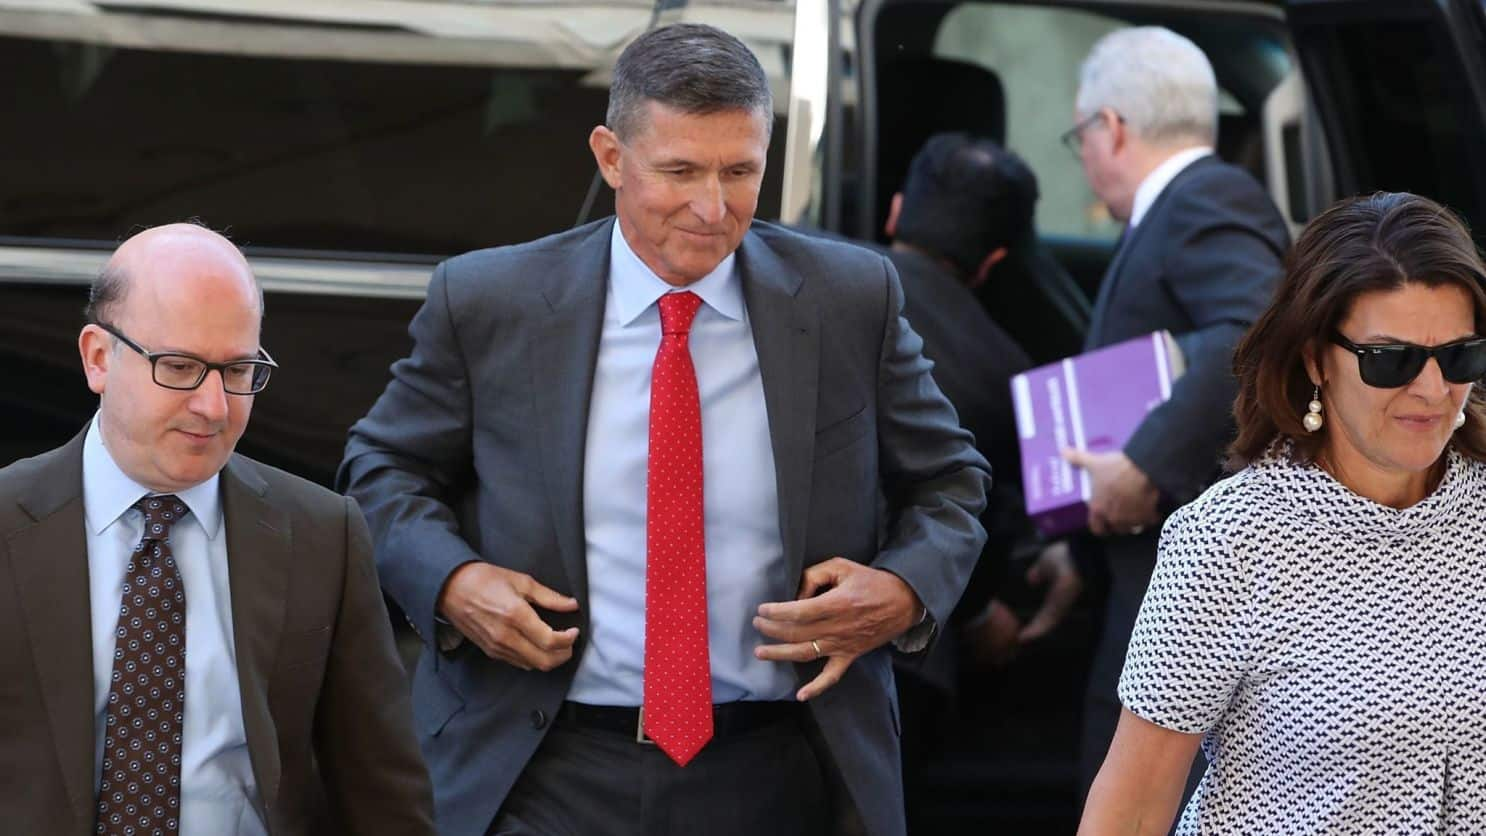 If Rumors of Flynn's FBI Cooperation are True, it Could be Game Over for Trump